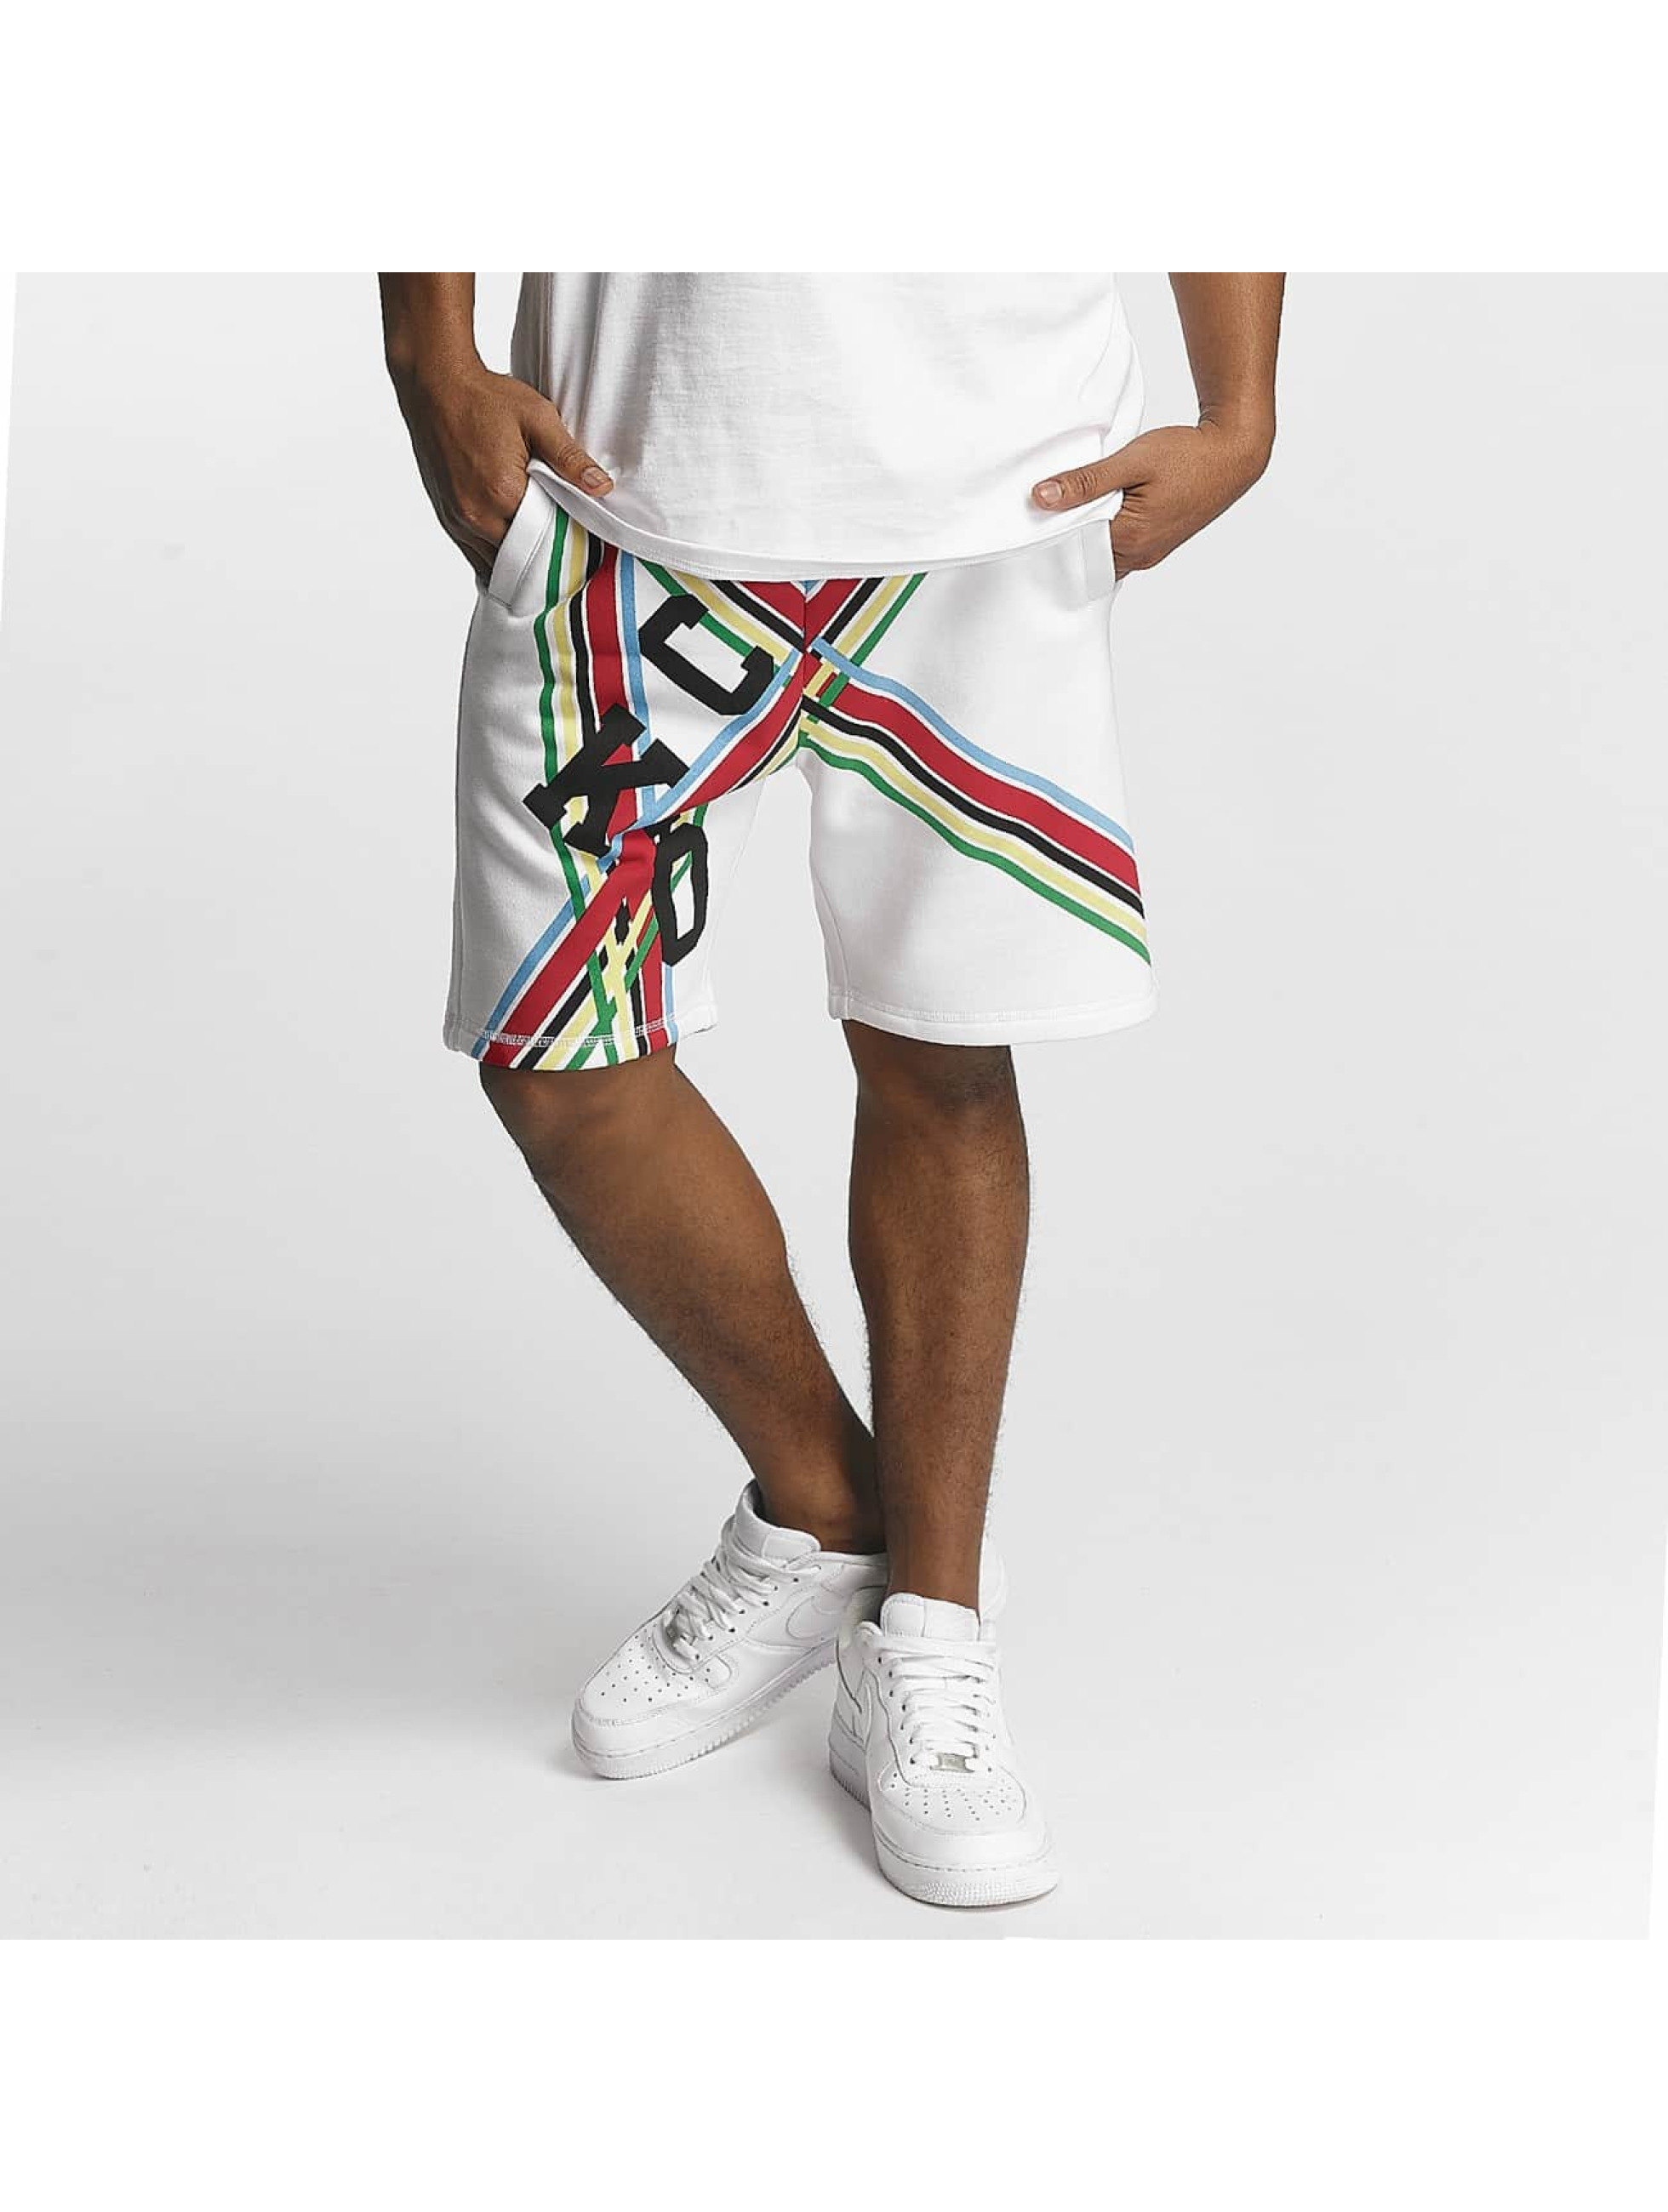 Ecko Unltd. / Short TourdÀfrique in white XL